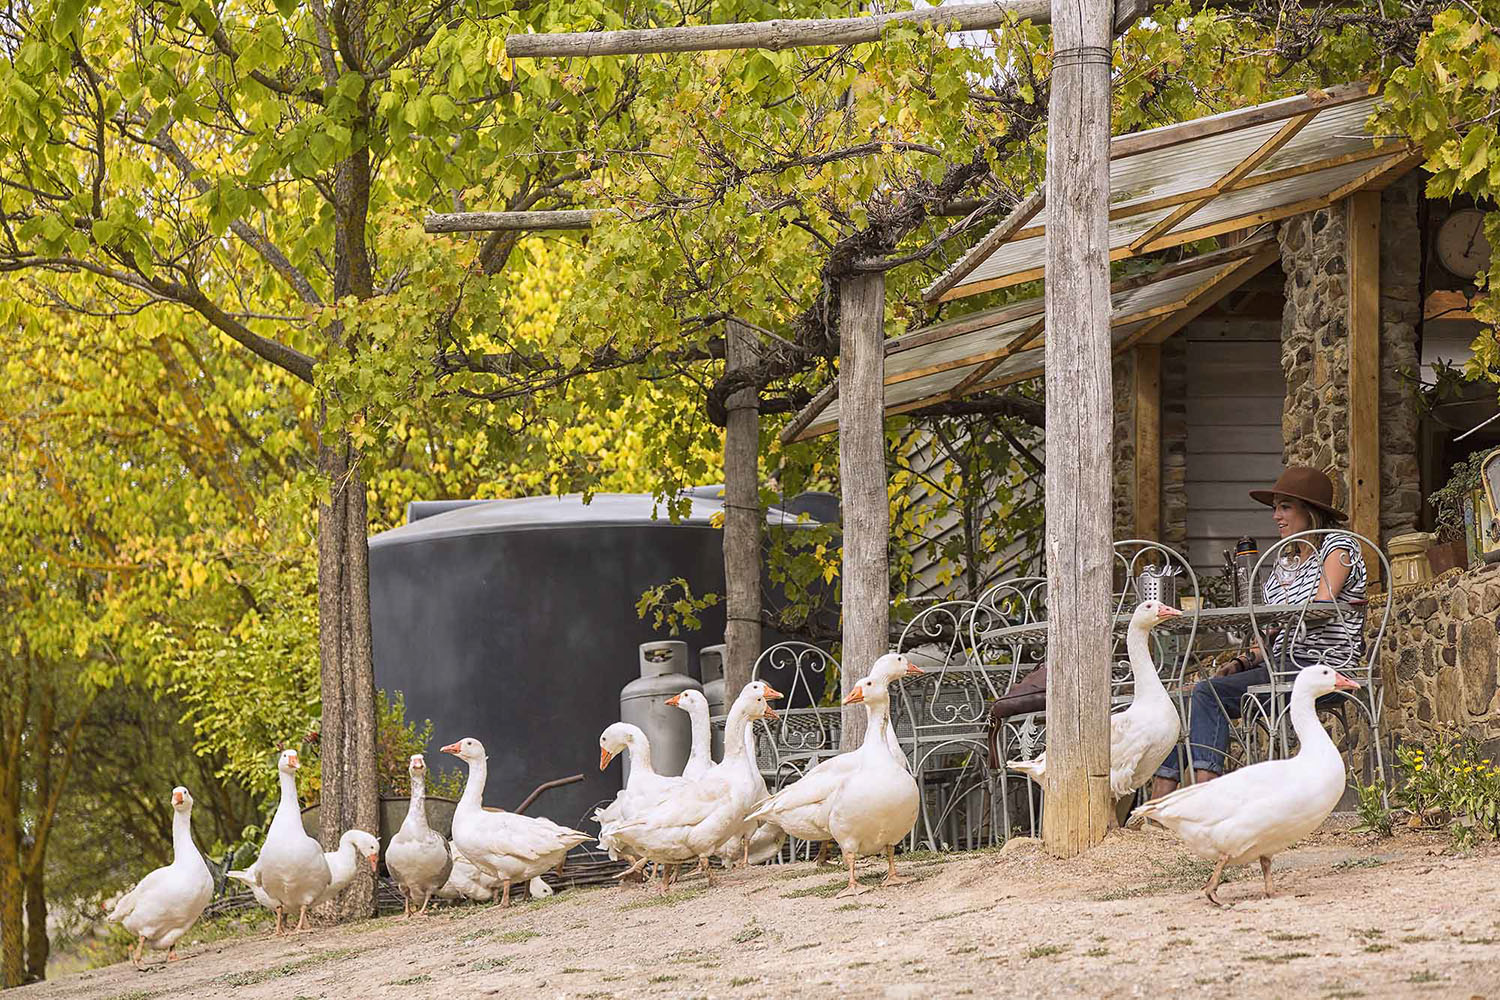 Watching the geese at play at Cafe La Trattoria inside the Lavandula Swiss Italian Farm